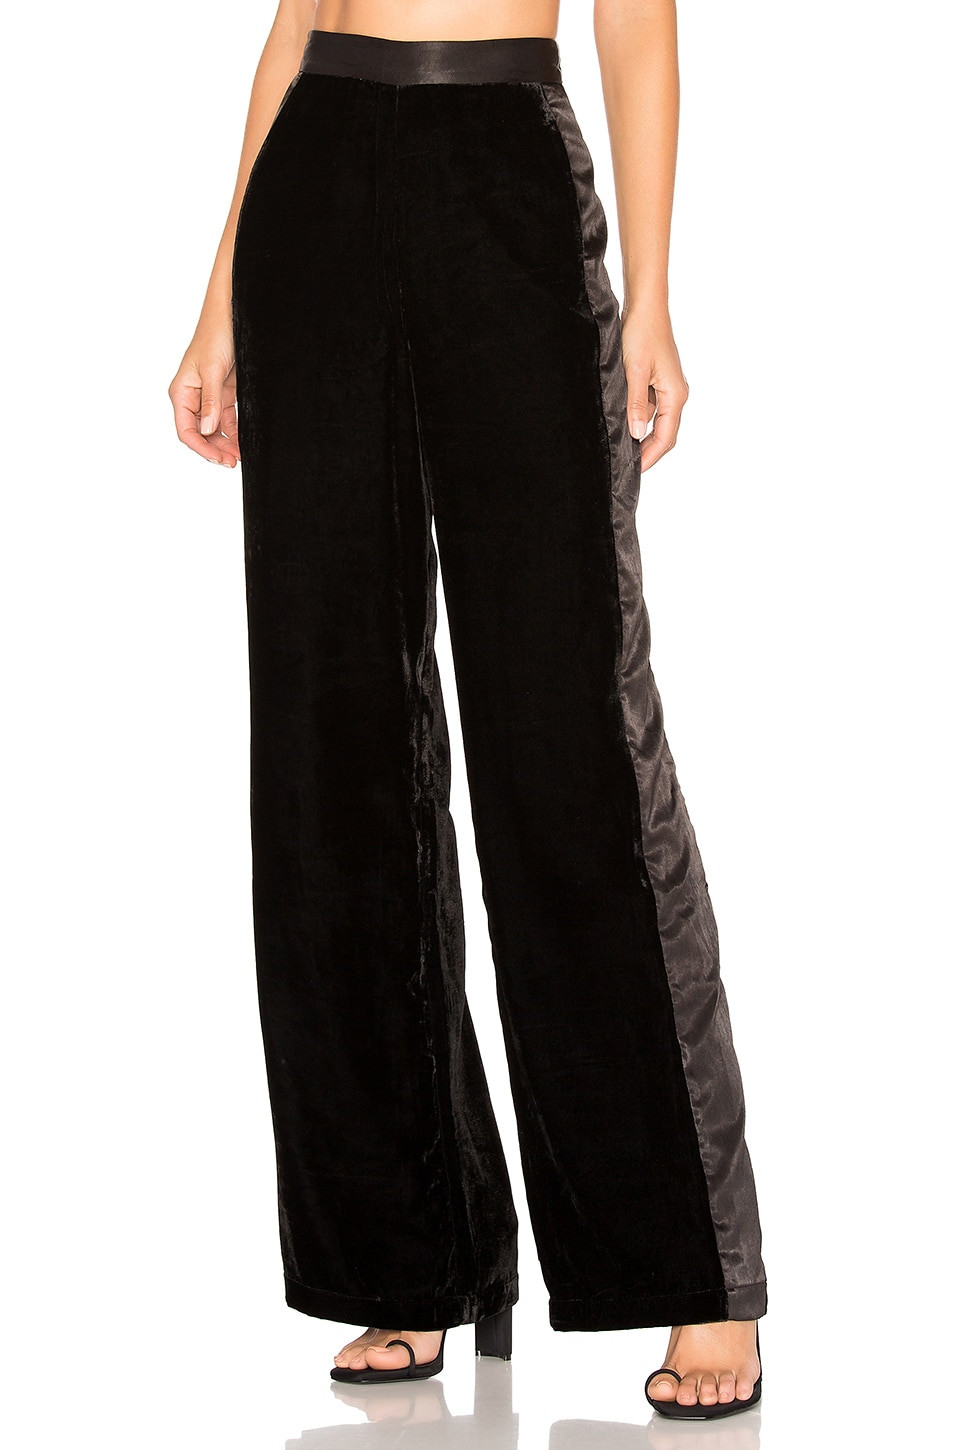 House of Harlow 1960 X REVOLVE Kyle Pants in Noir